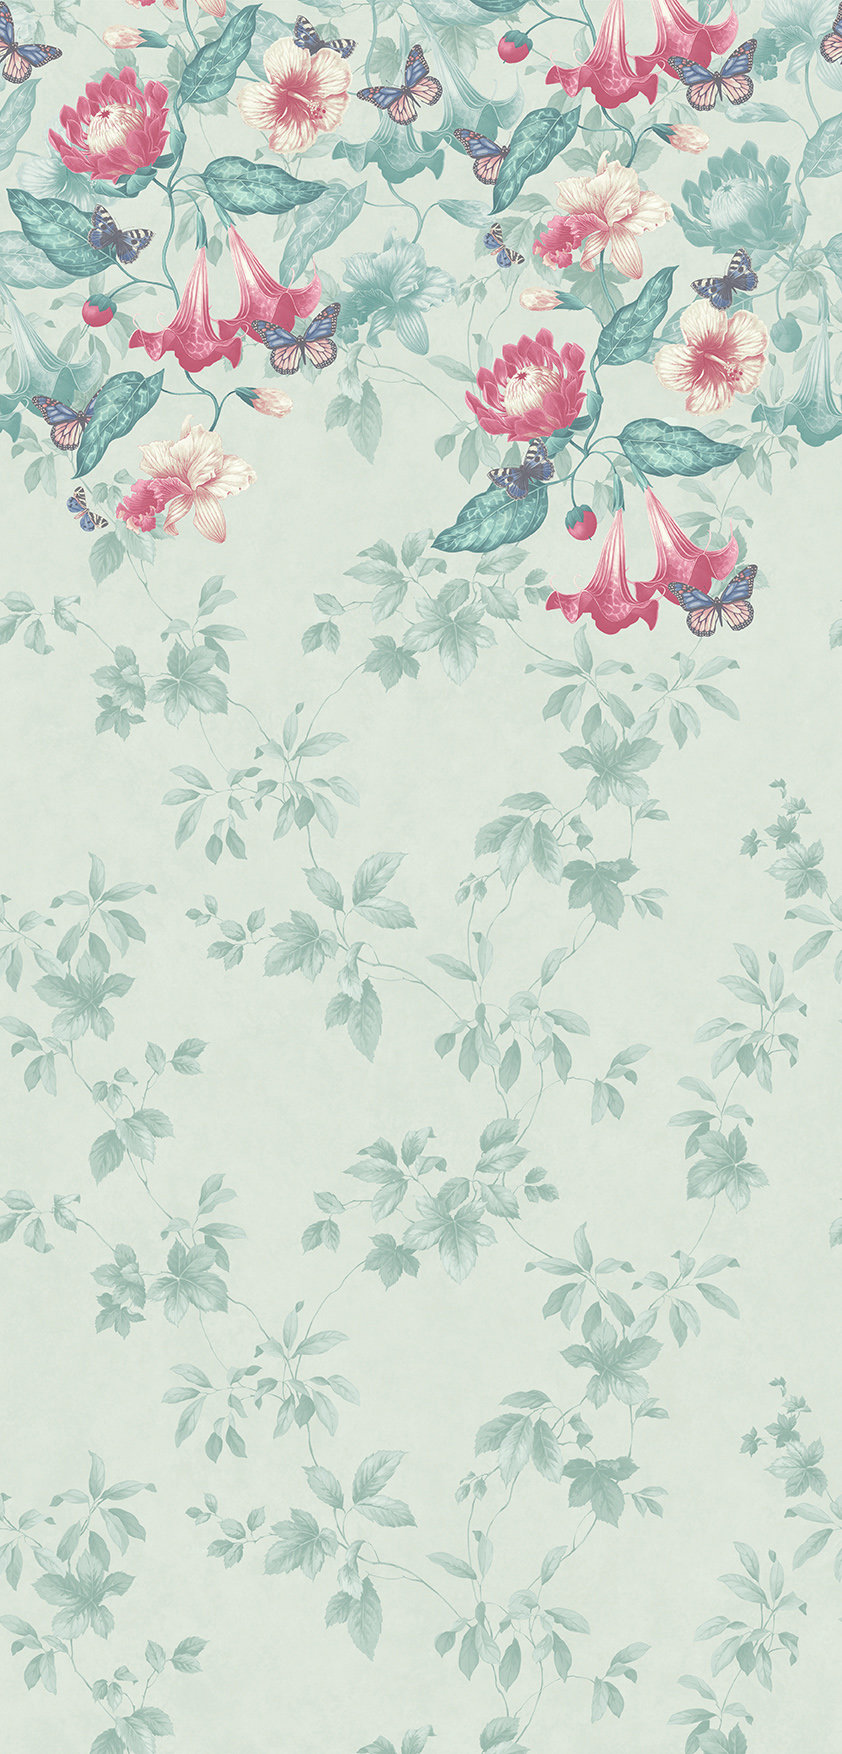 Asterid mural - Island - by Little Greene